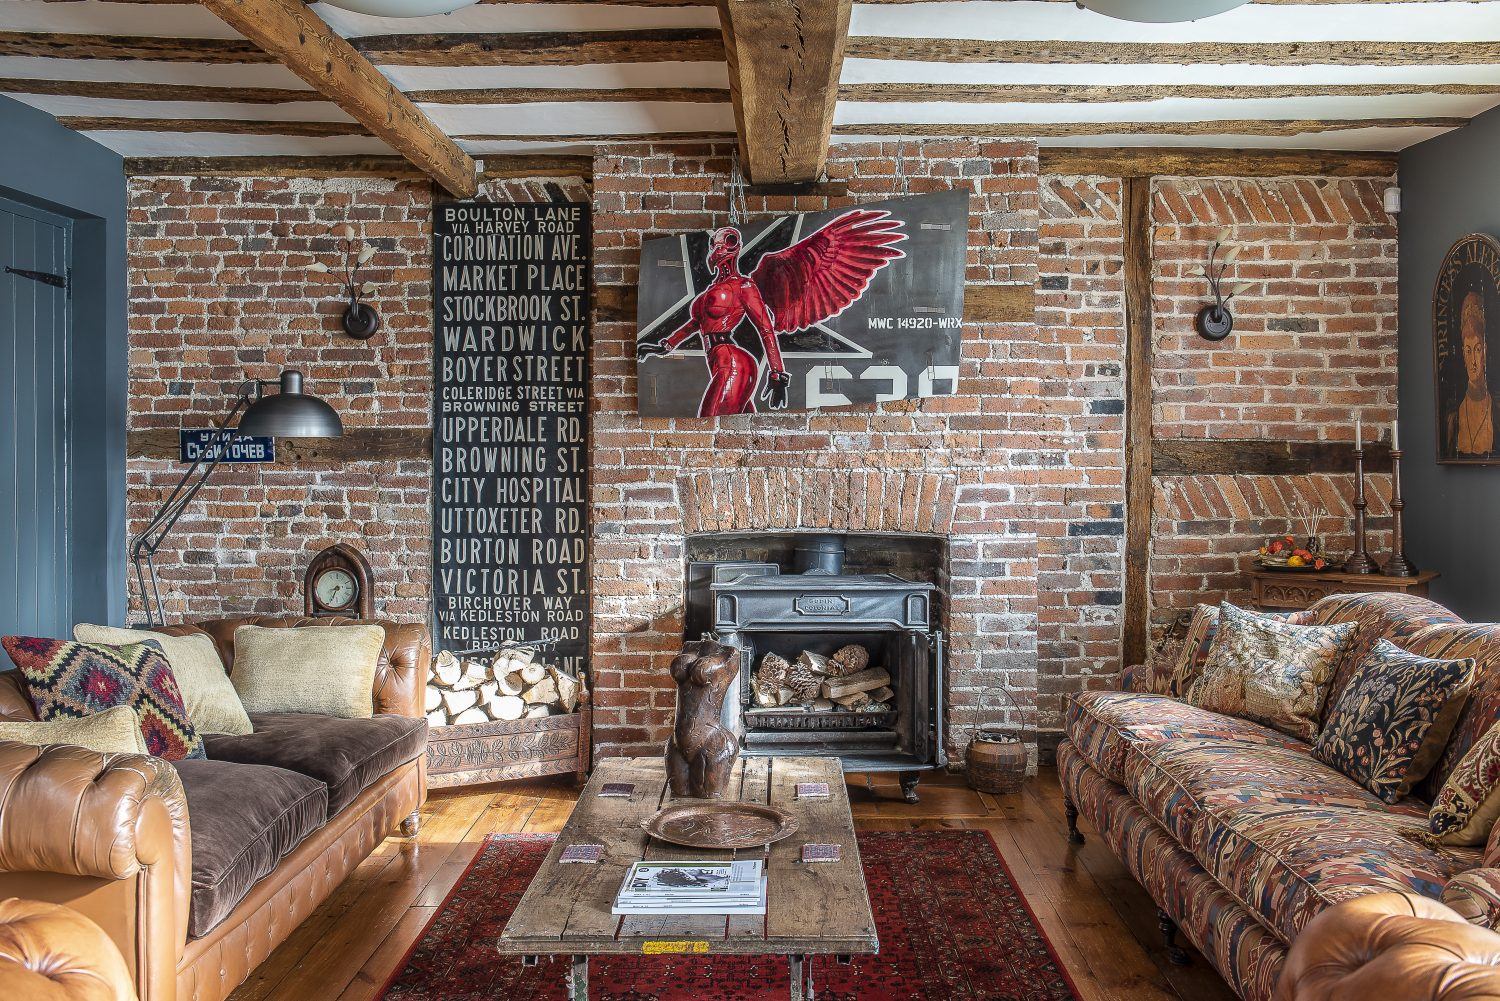 A piece by the artist Wreckage, a member of an art co-operative called the Mutoid Waste Company, painted on a panel of a fighter jet, hangs above the woodburner in the sitting room